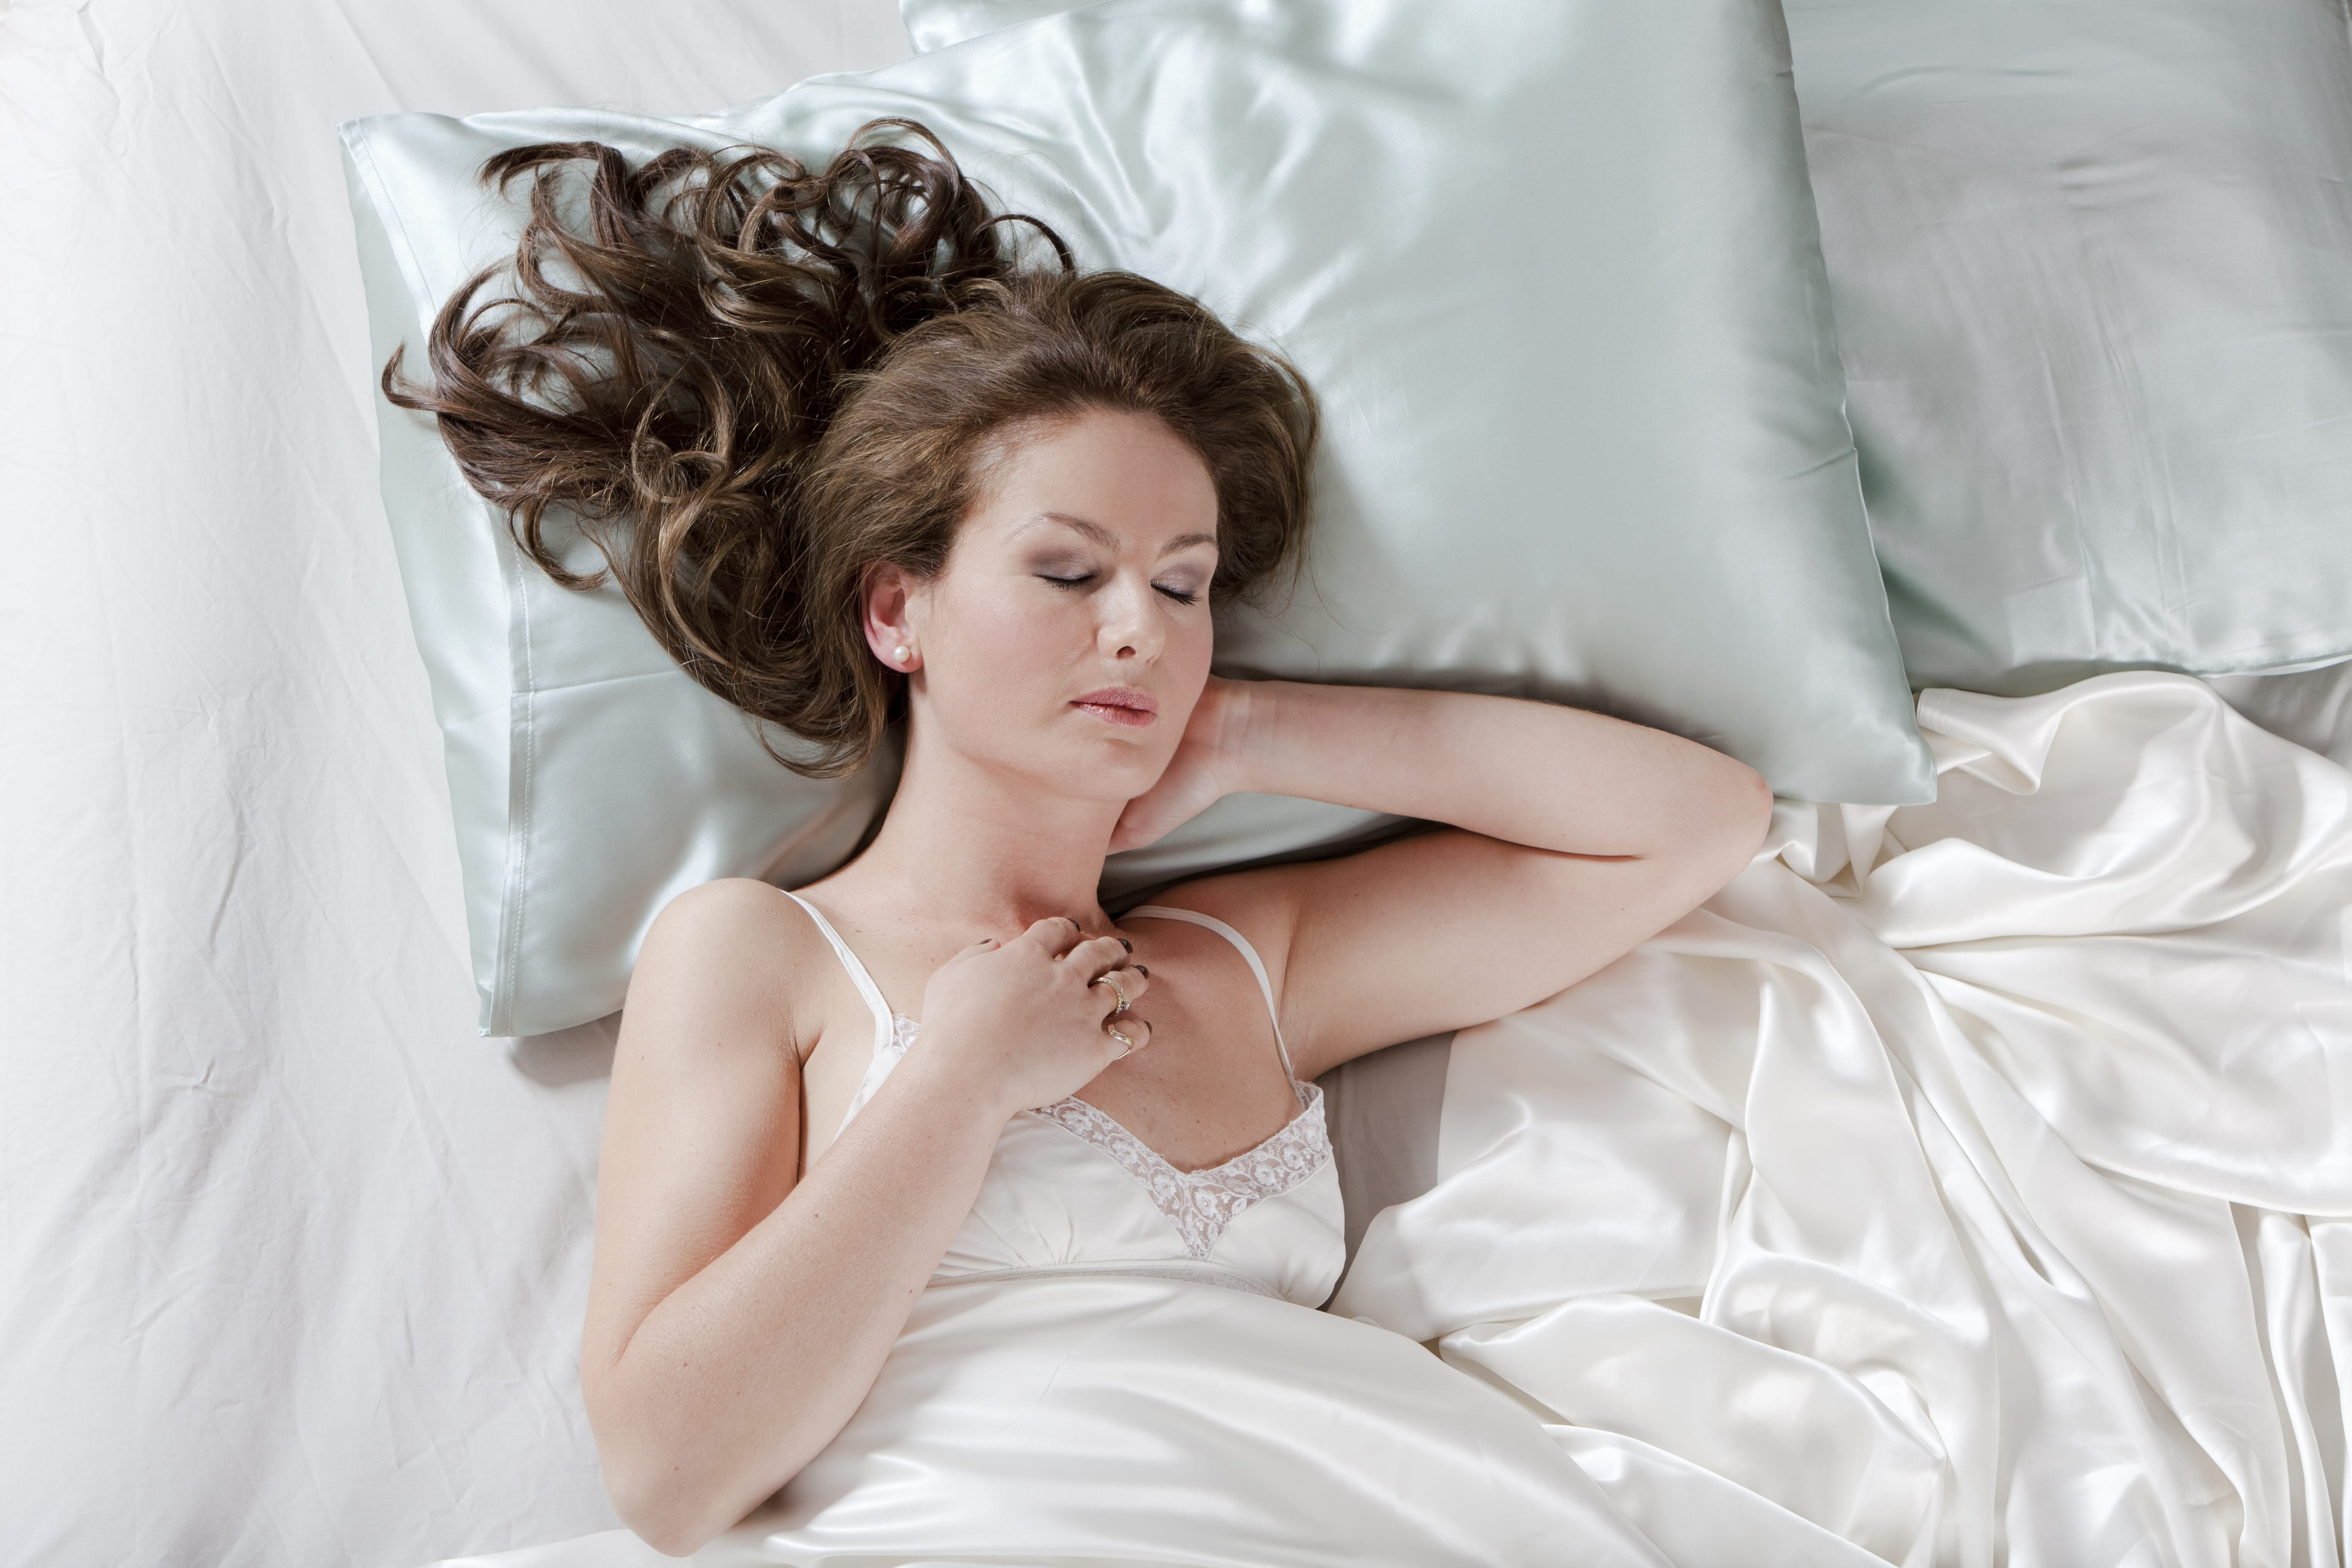 How to get rid of frizzy hair: Woman with long wavy brown hair laying in bed with silk sheets.